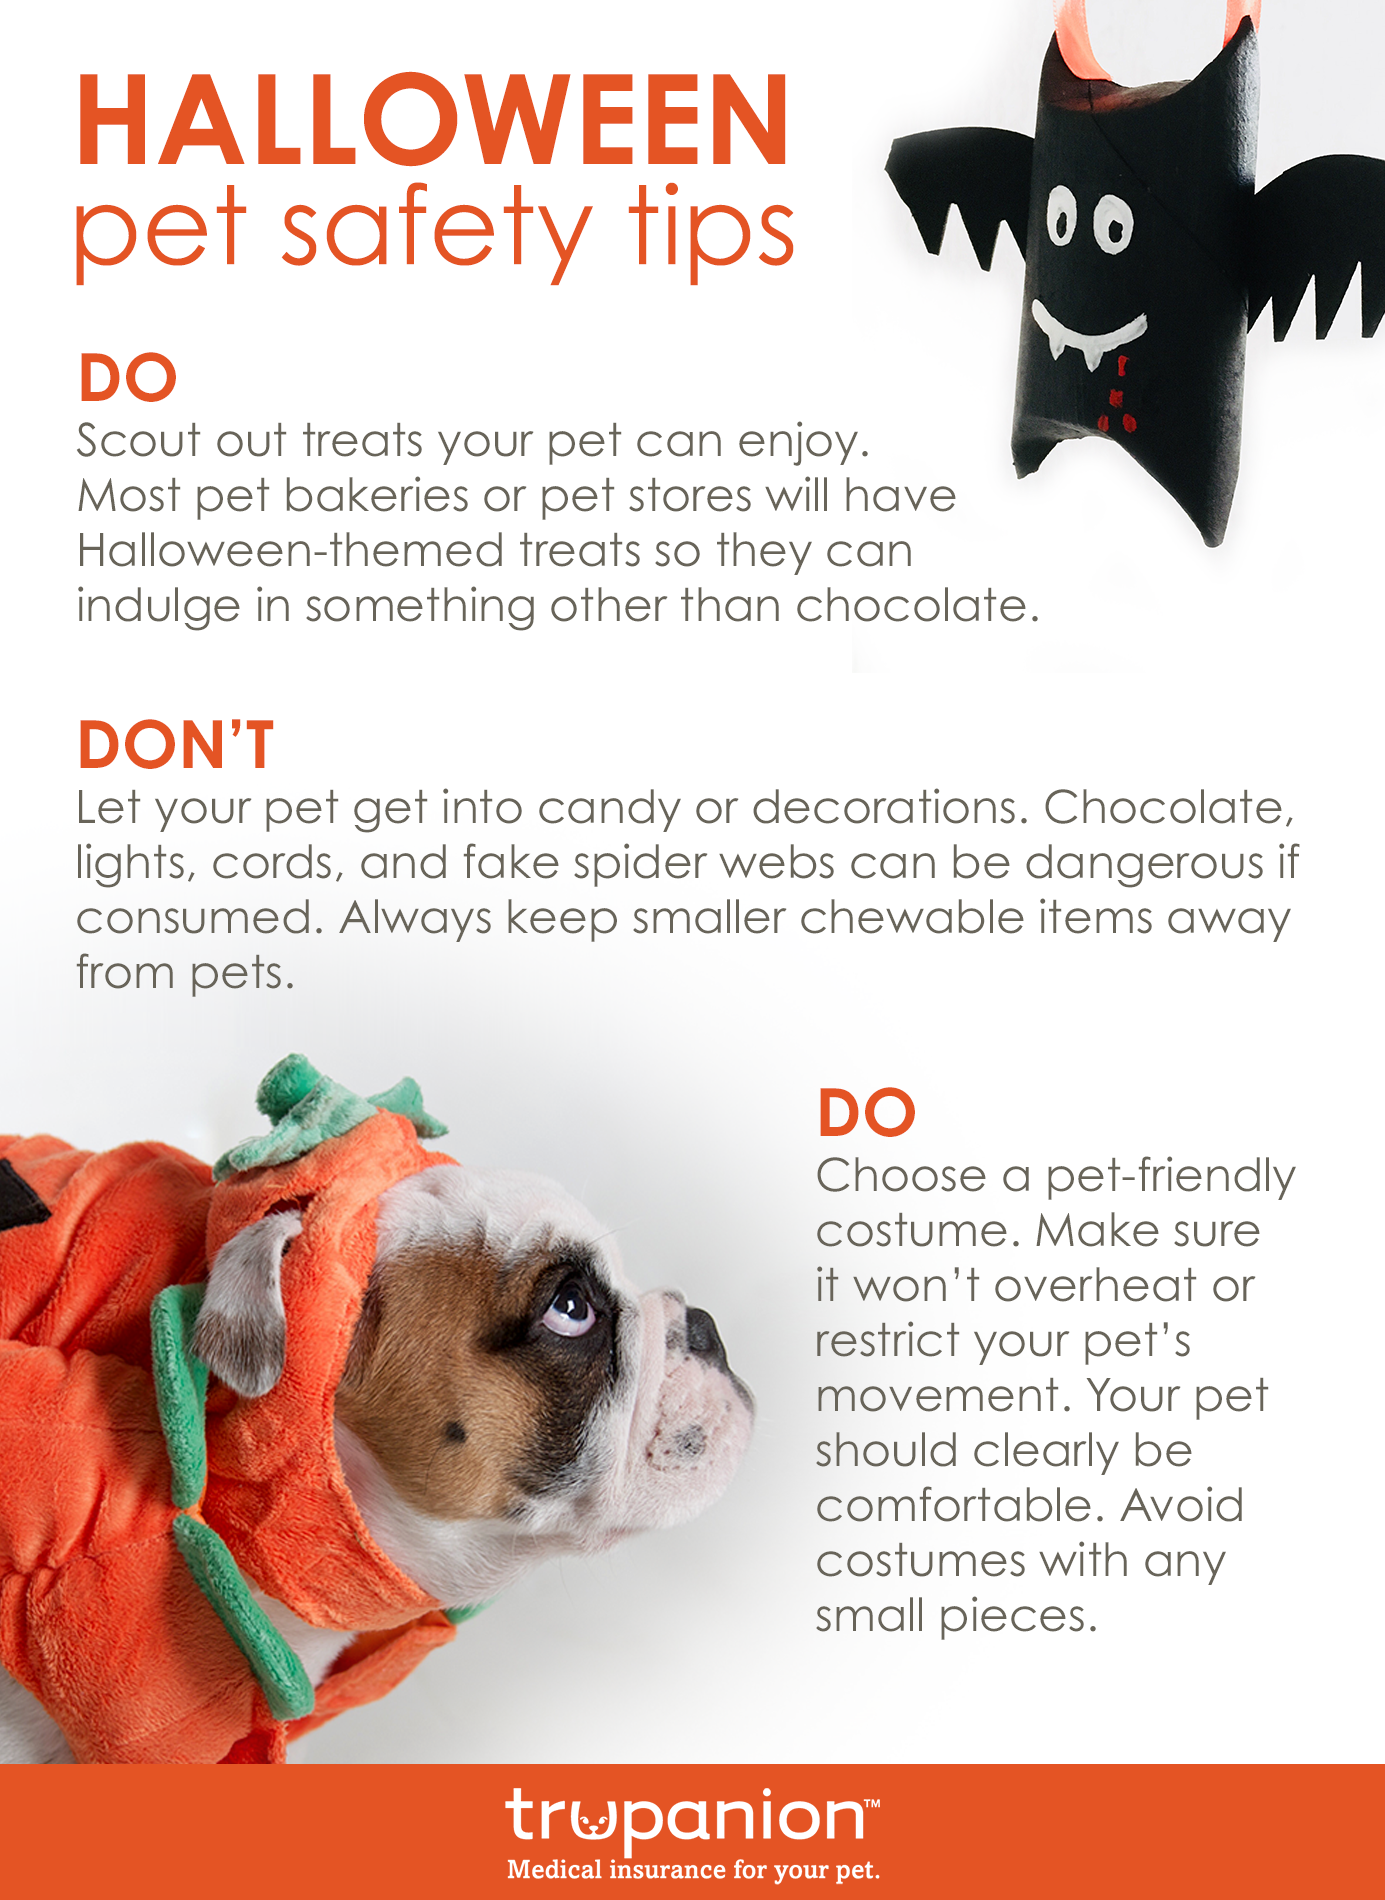 3 Vet Approved Halloween Pet Safety Tips With Images Pet Safety Halloween Animals Halloween Pet Safety